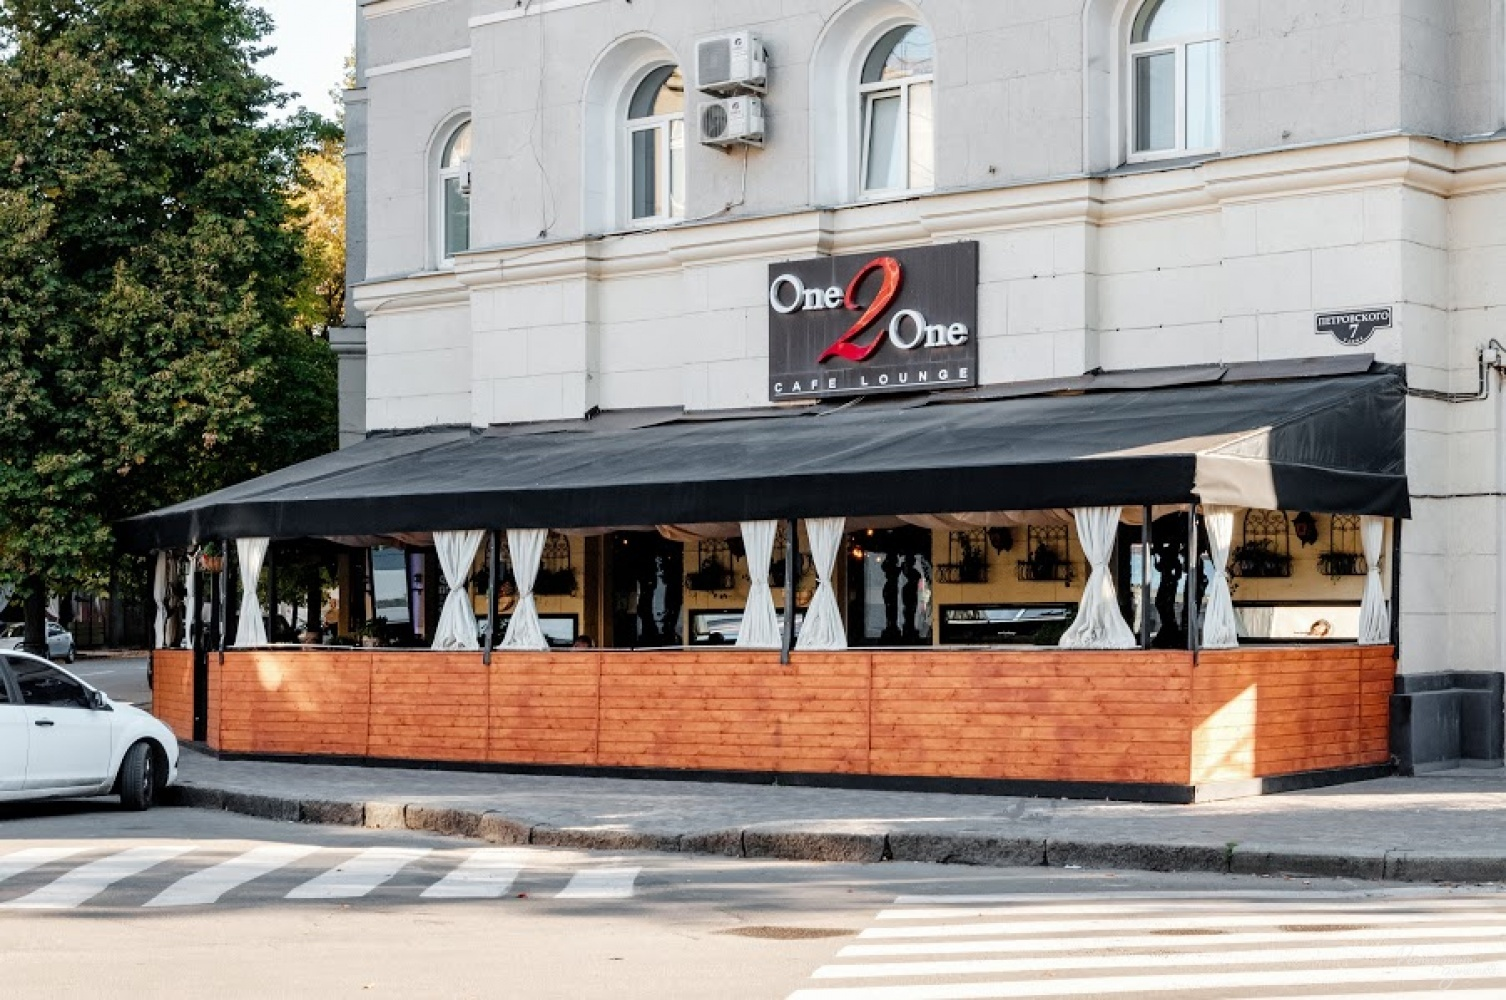 One2One Casual Restaurant